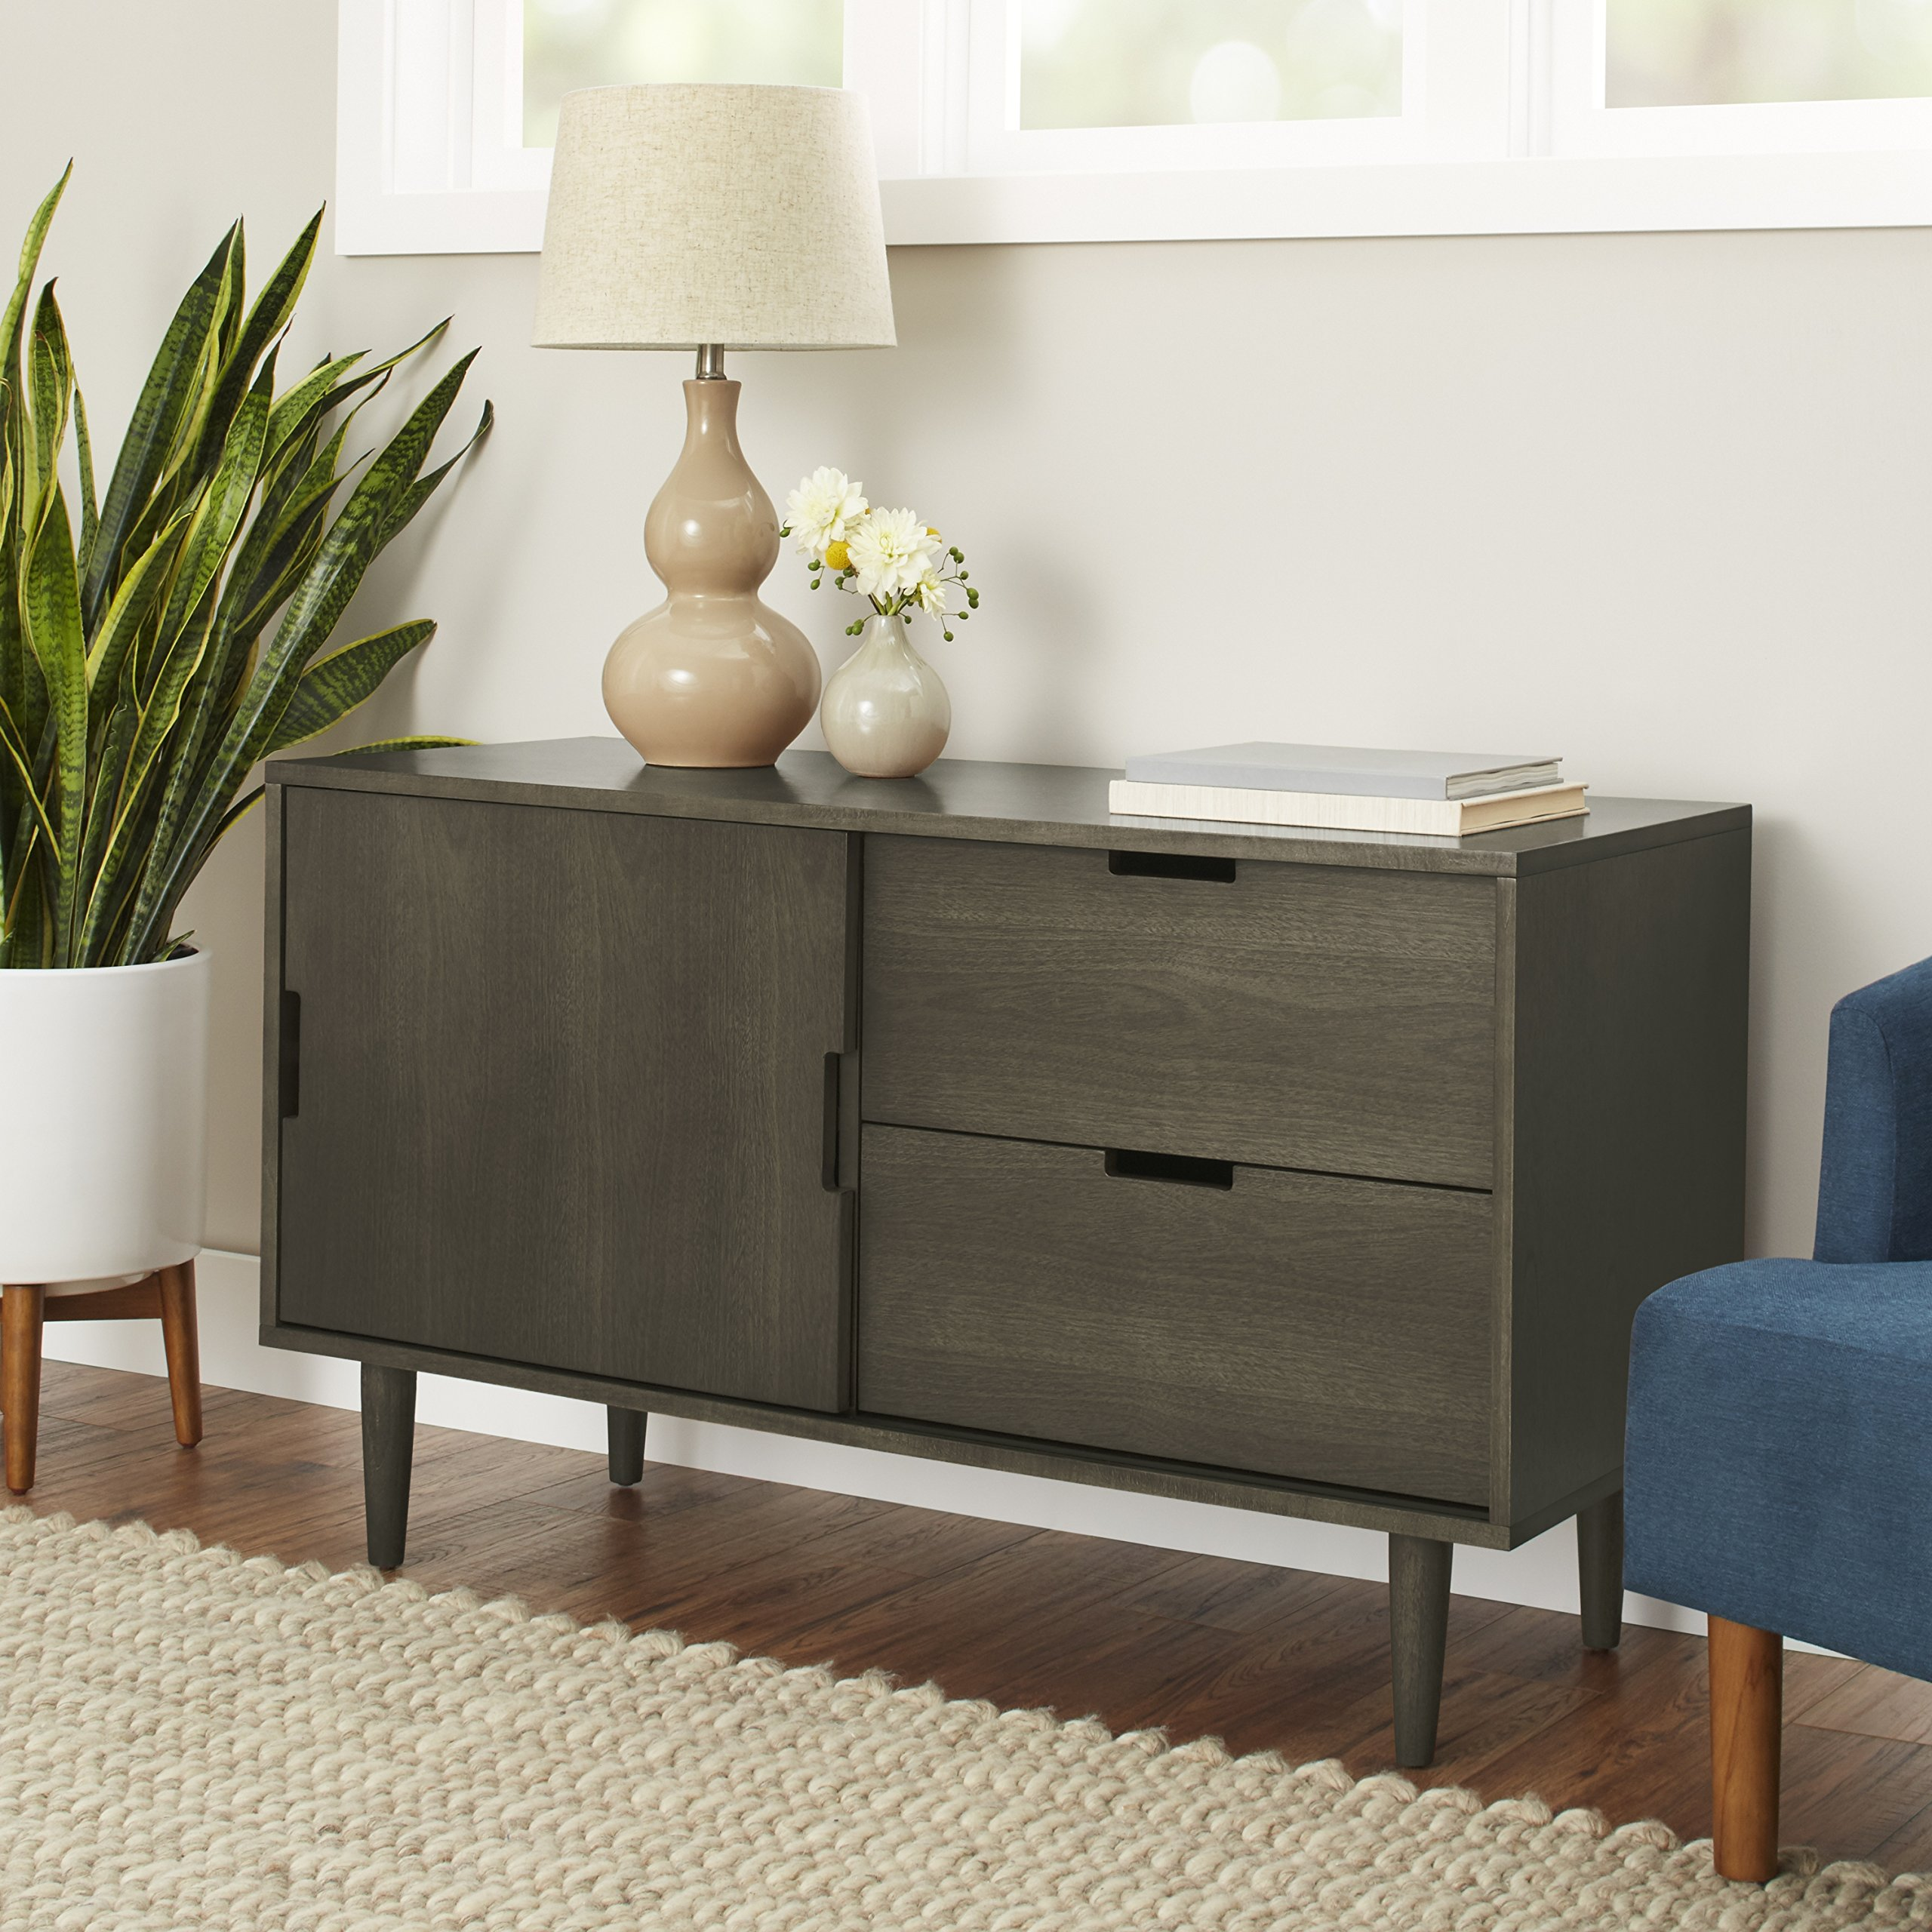 Better Homes and Gardens Flynn Mid Century Modern Credenza, Smoke Gray by Better Homes and Gardens (Image #1)